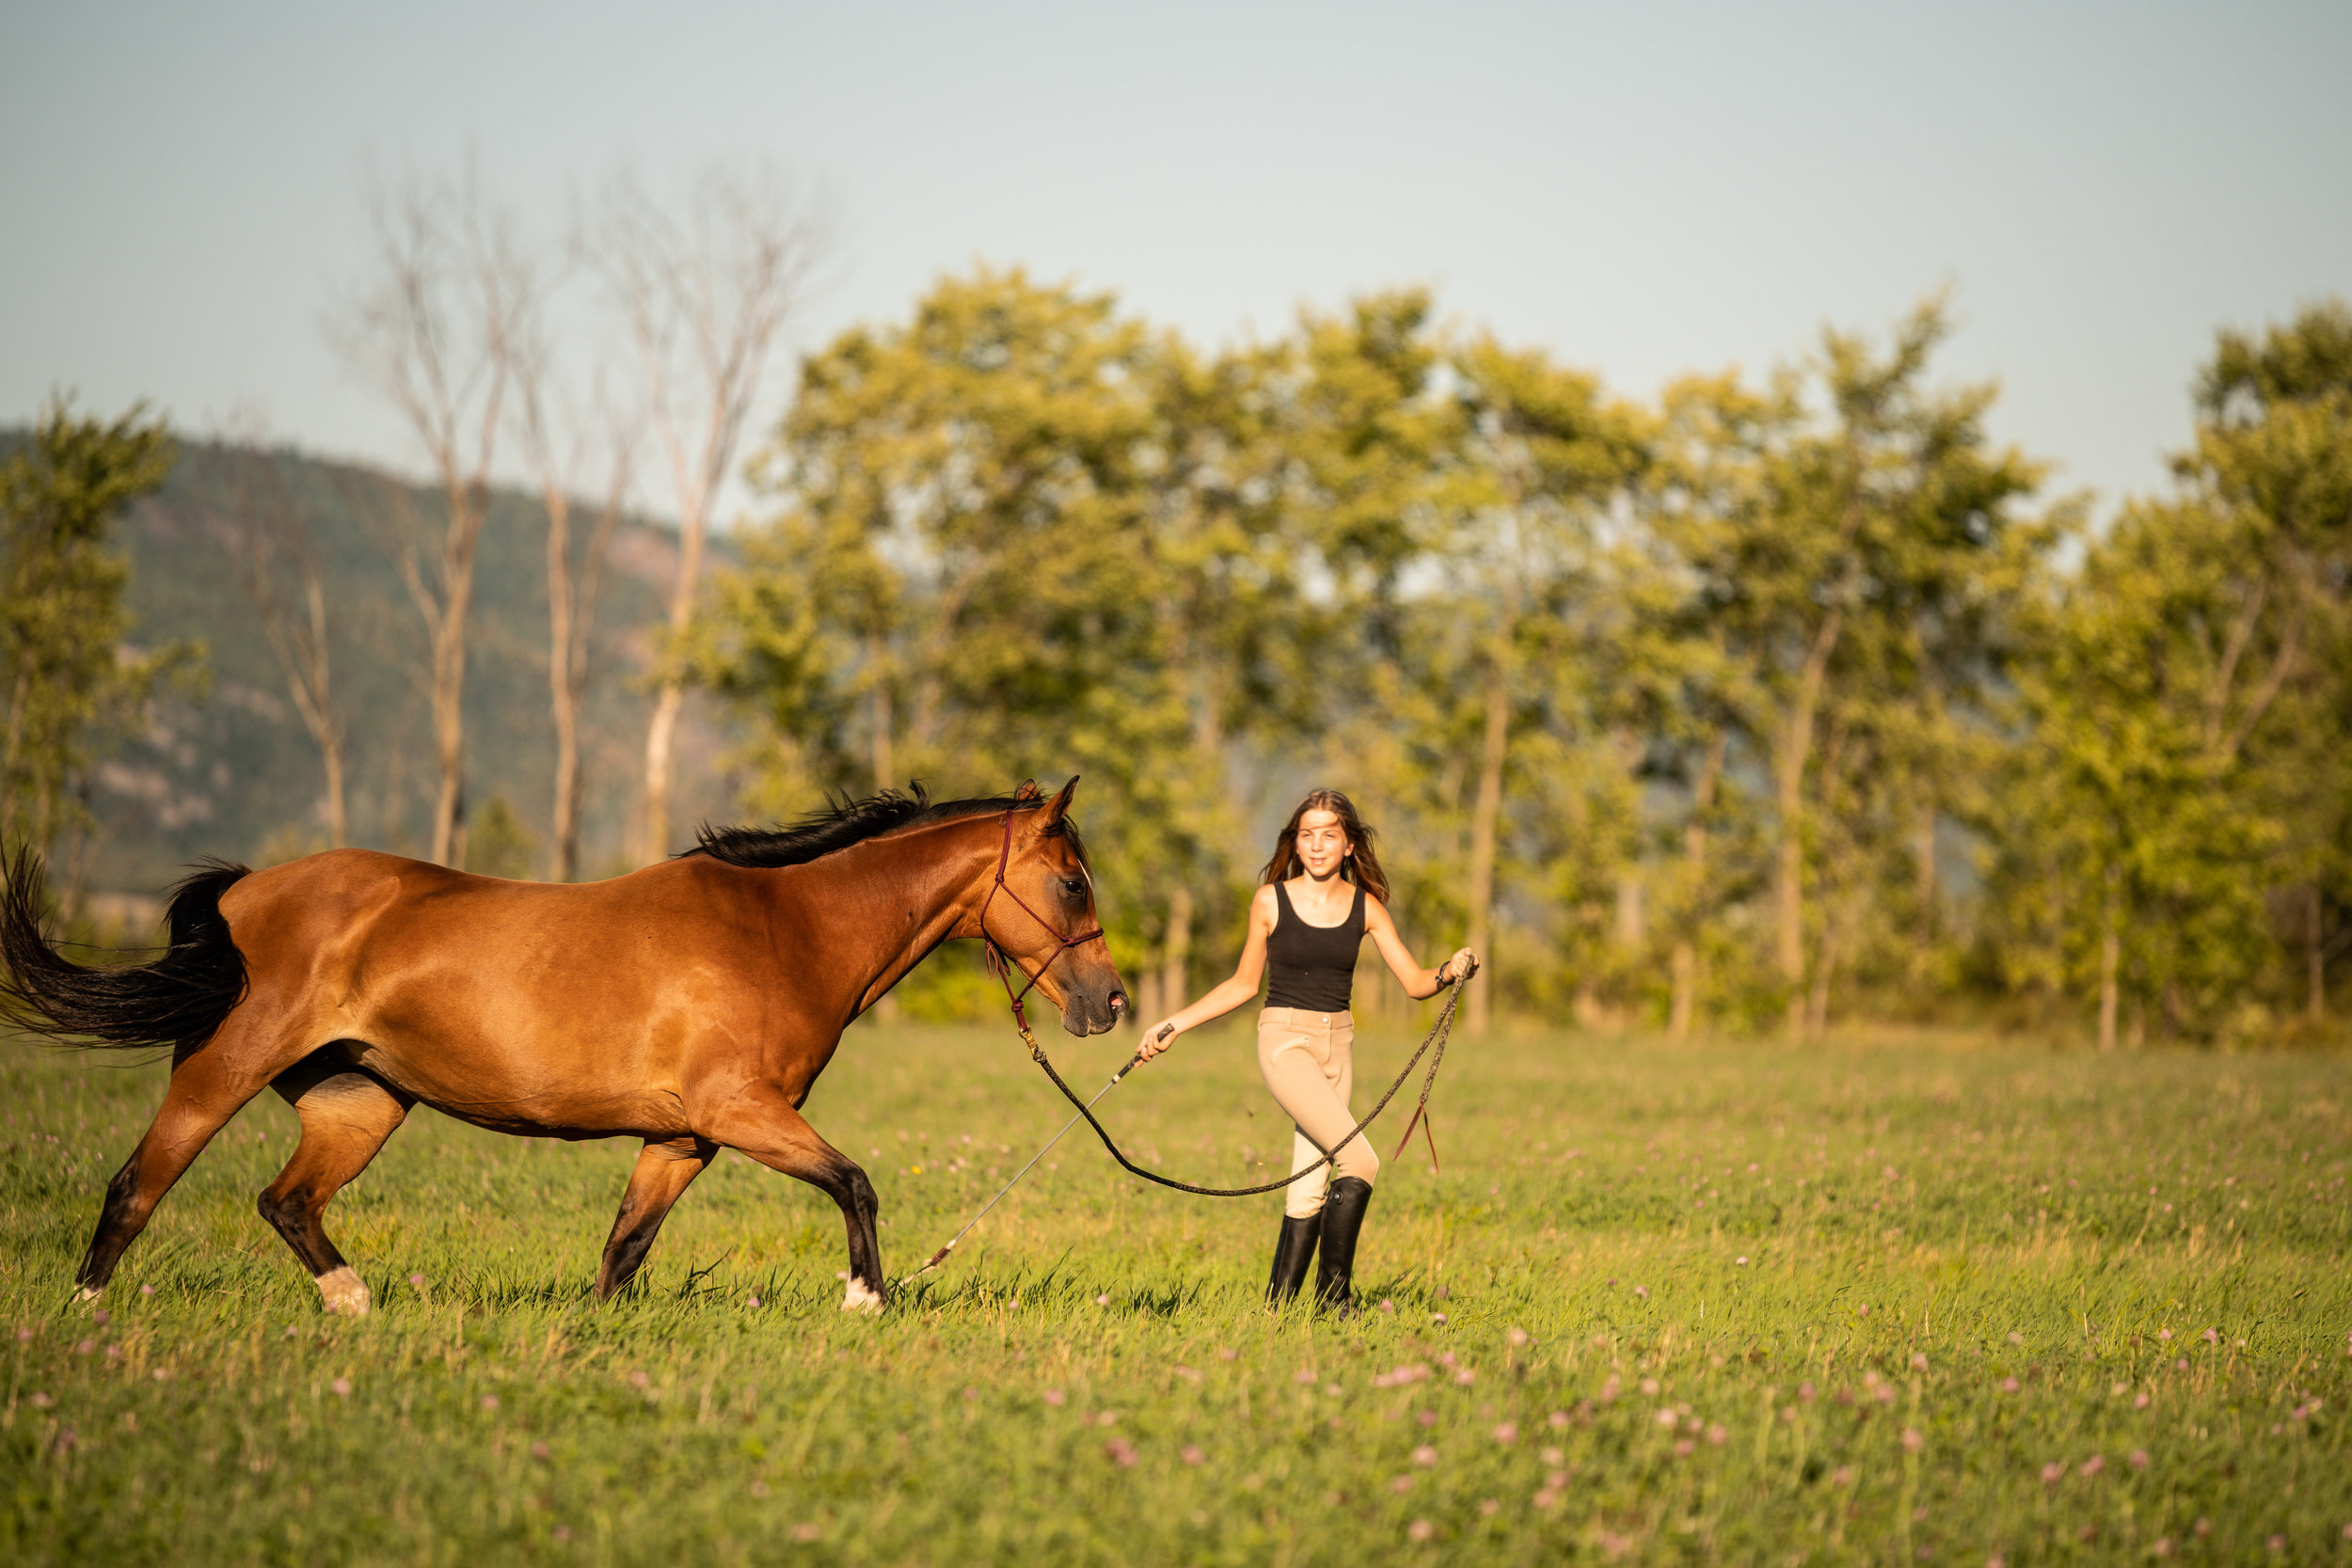 Bay mare and girl in a field